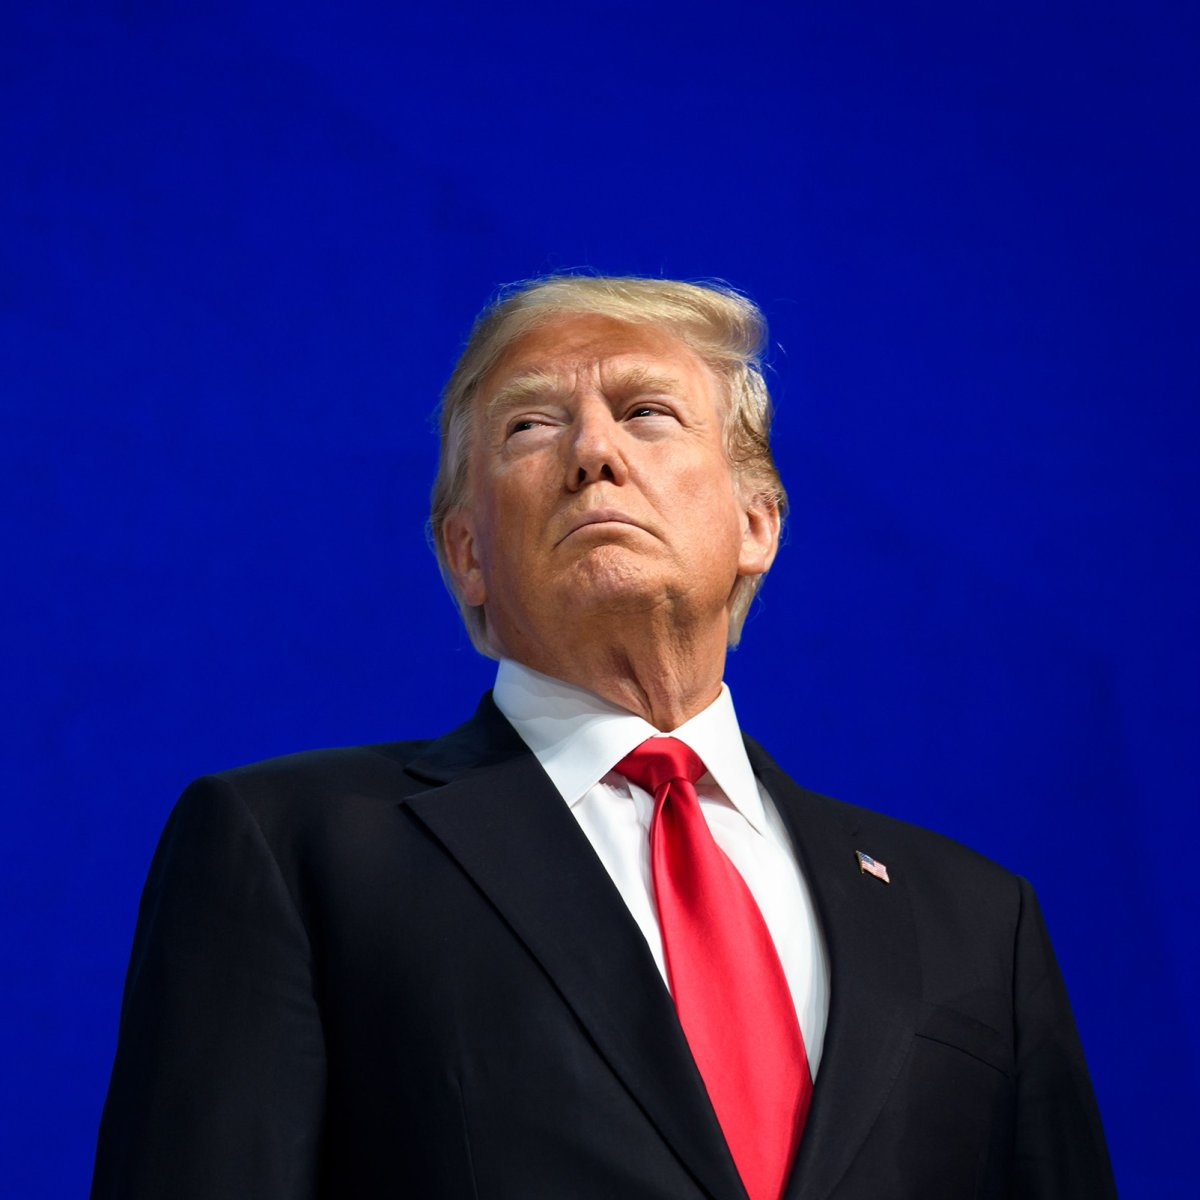 TOPSHOT - US President Donald Trump looks on before delivering a speech during the World Economic Forum (WEF) annual meeting on January 26, 2018 in Davos, eastern Switzerland.  / AFP PHOTO / Fabrice COFFRINI        (Photo credit should read FABRICE COFFRINI/AFP/Getty Images)